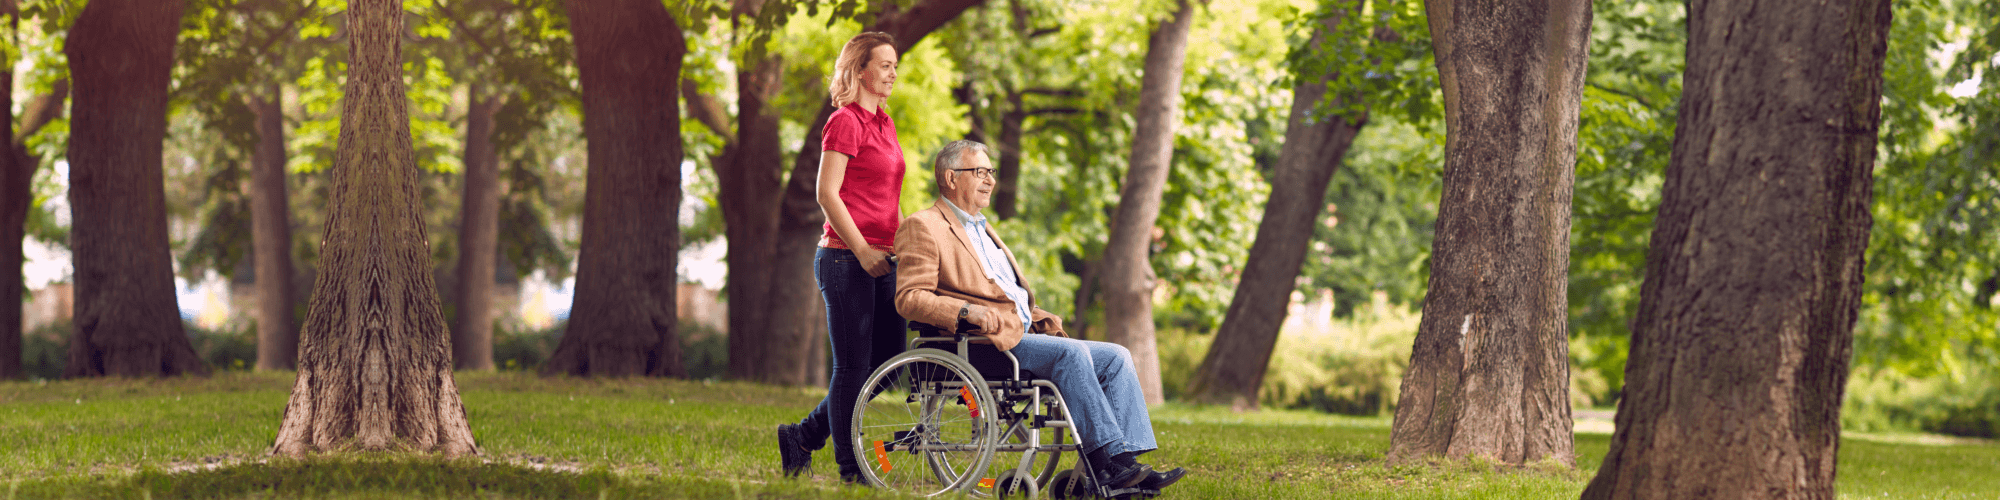 Happy family time- enjoying senior men in wheelchair and daughter in the park